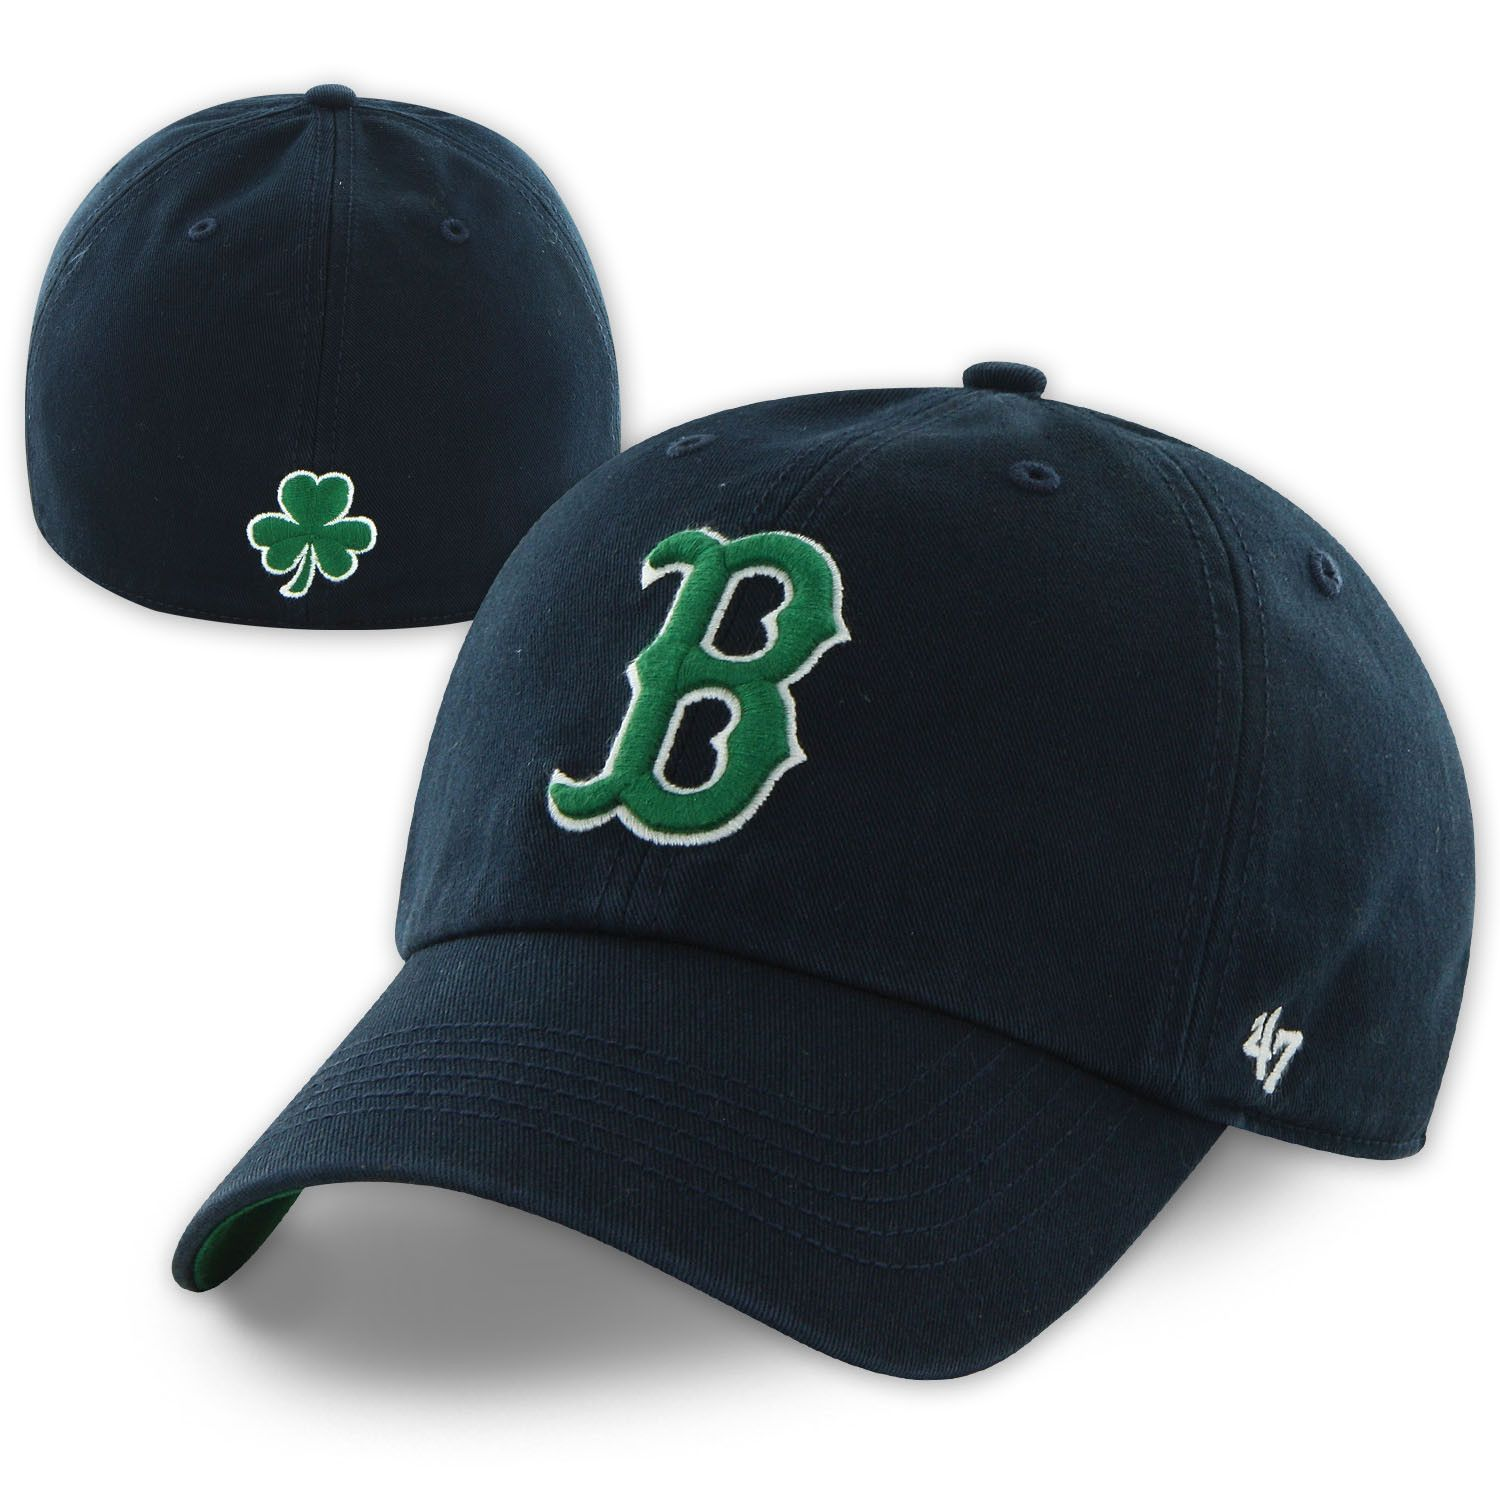 official photos 18e2b 682c7 ... where to buy boston red sox dark navy st. pats franchise. classic red  sox